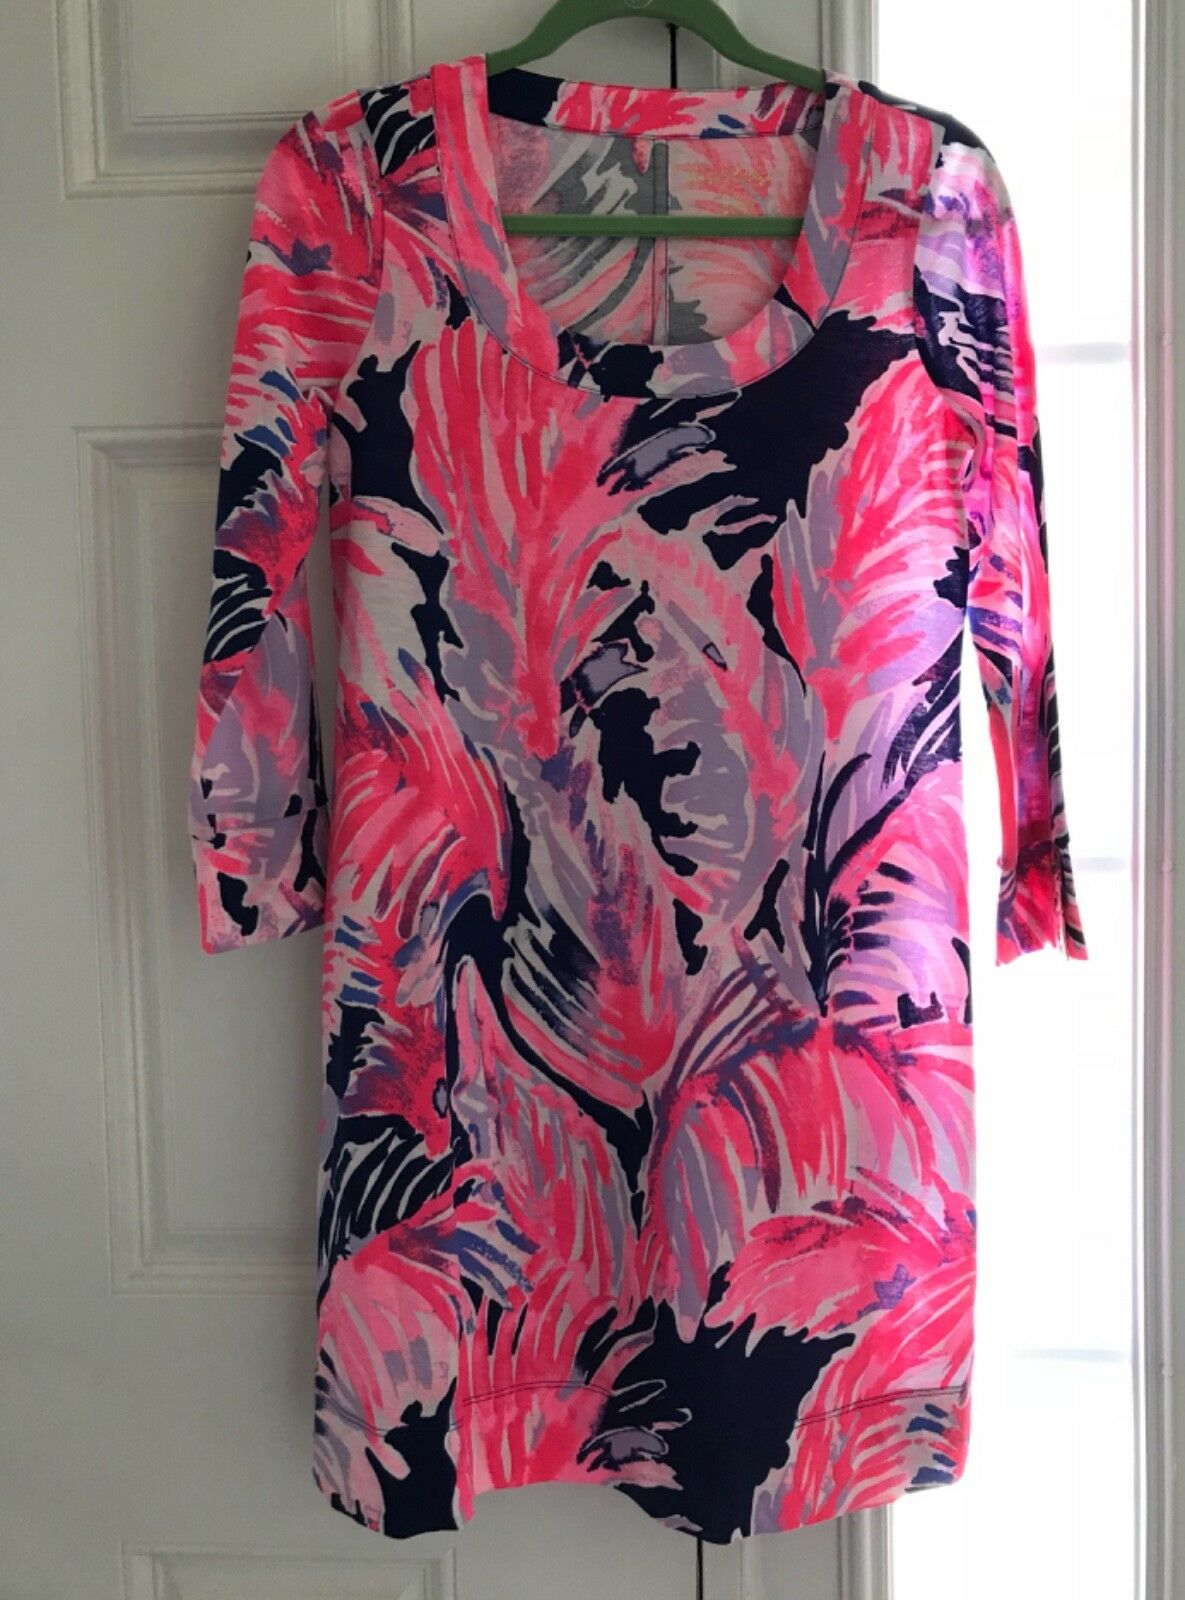 NWOT Lilly pulitzer dress size XS